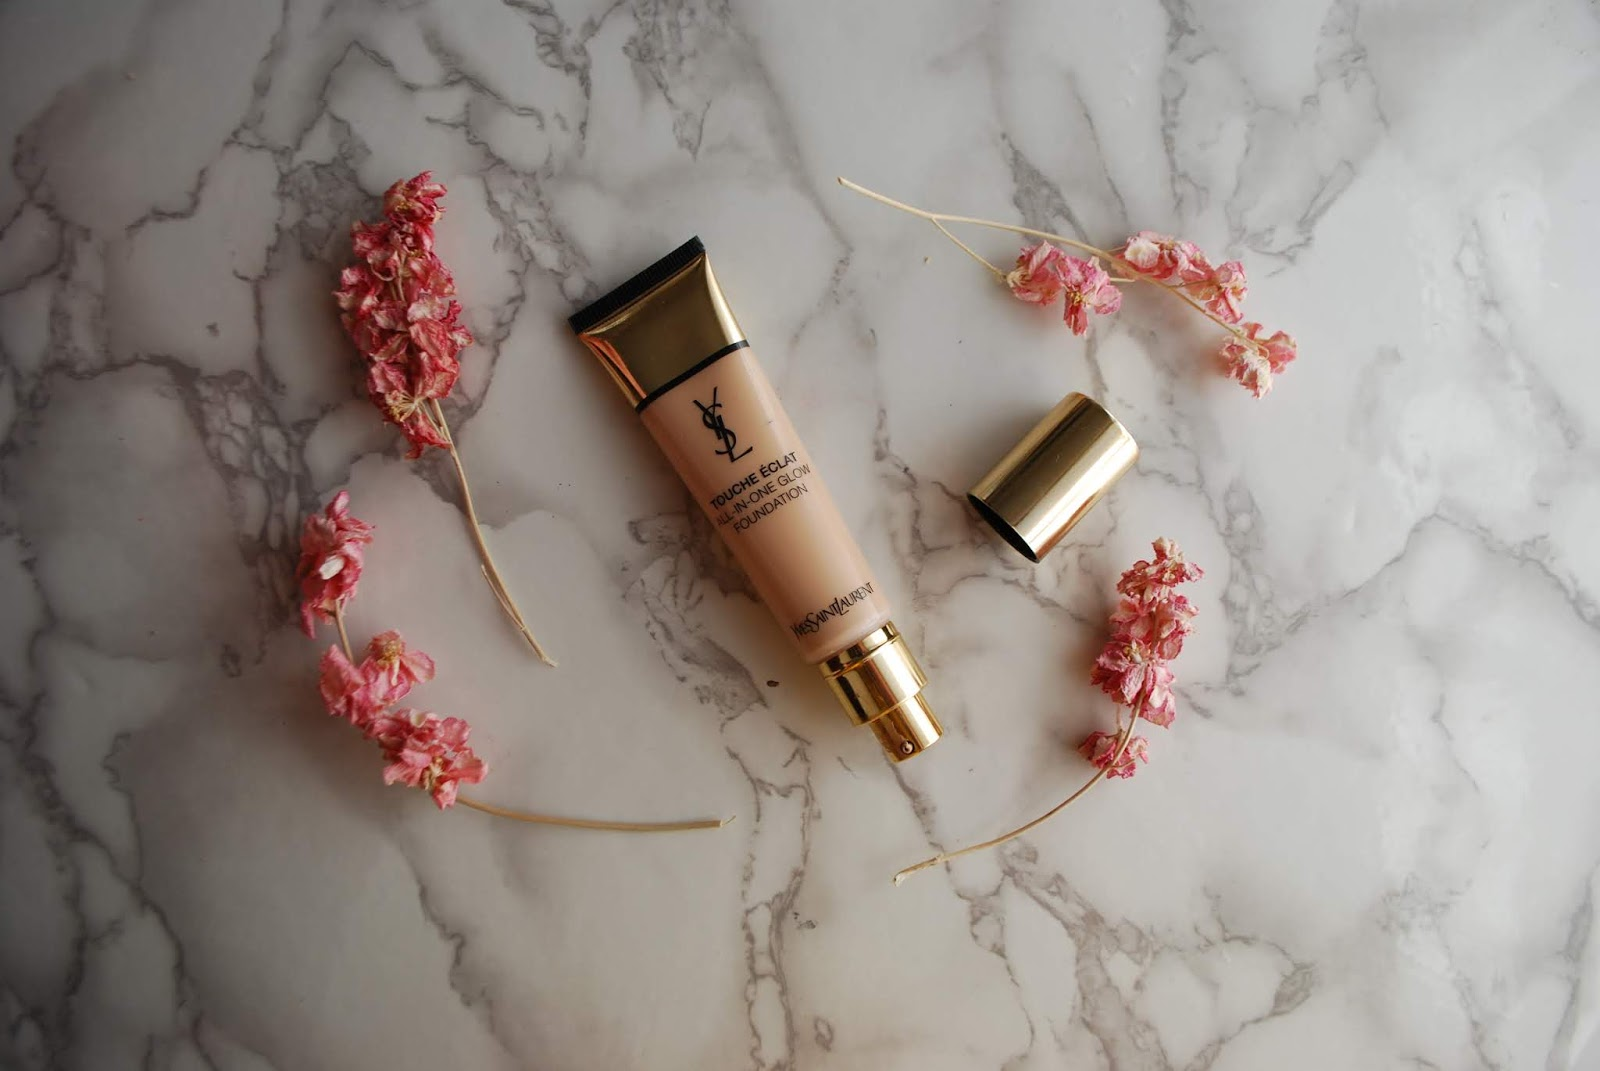 ysl all in one glow foundation review and swatches